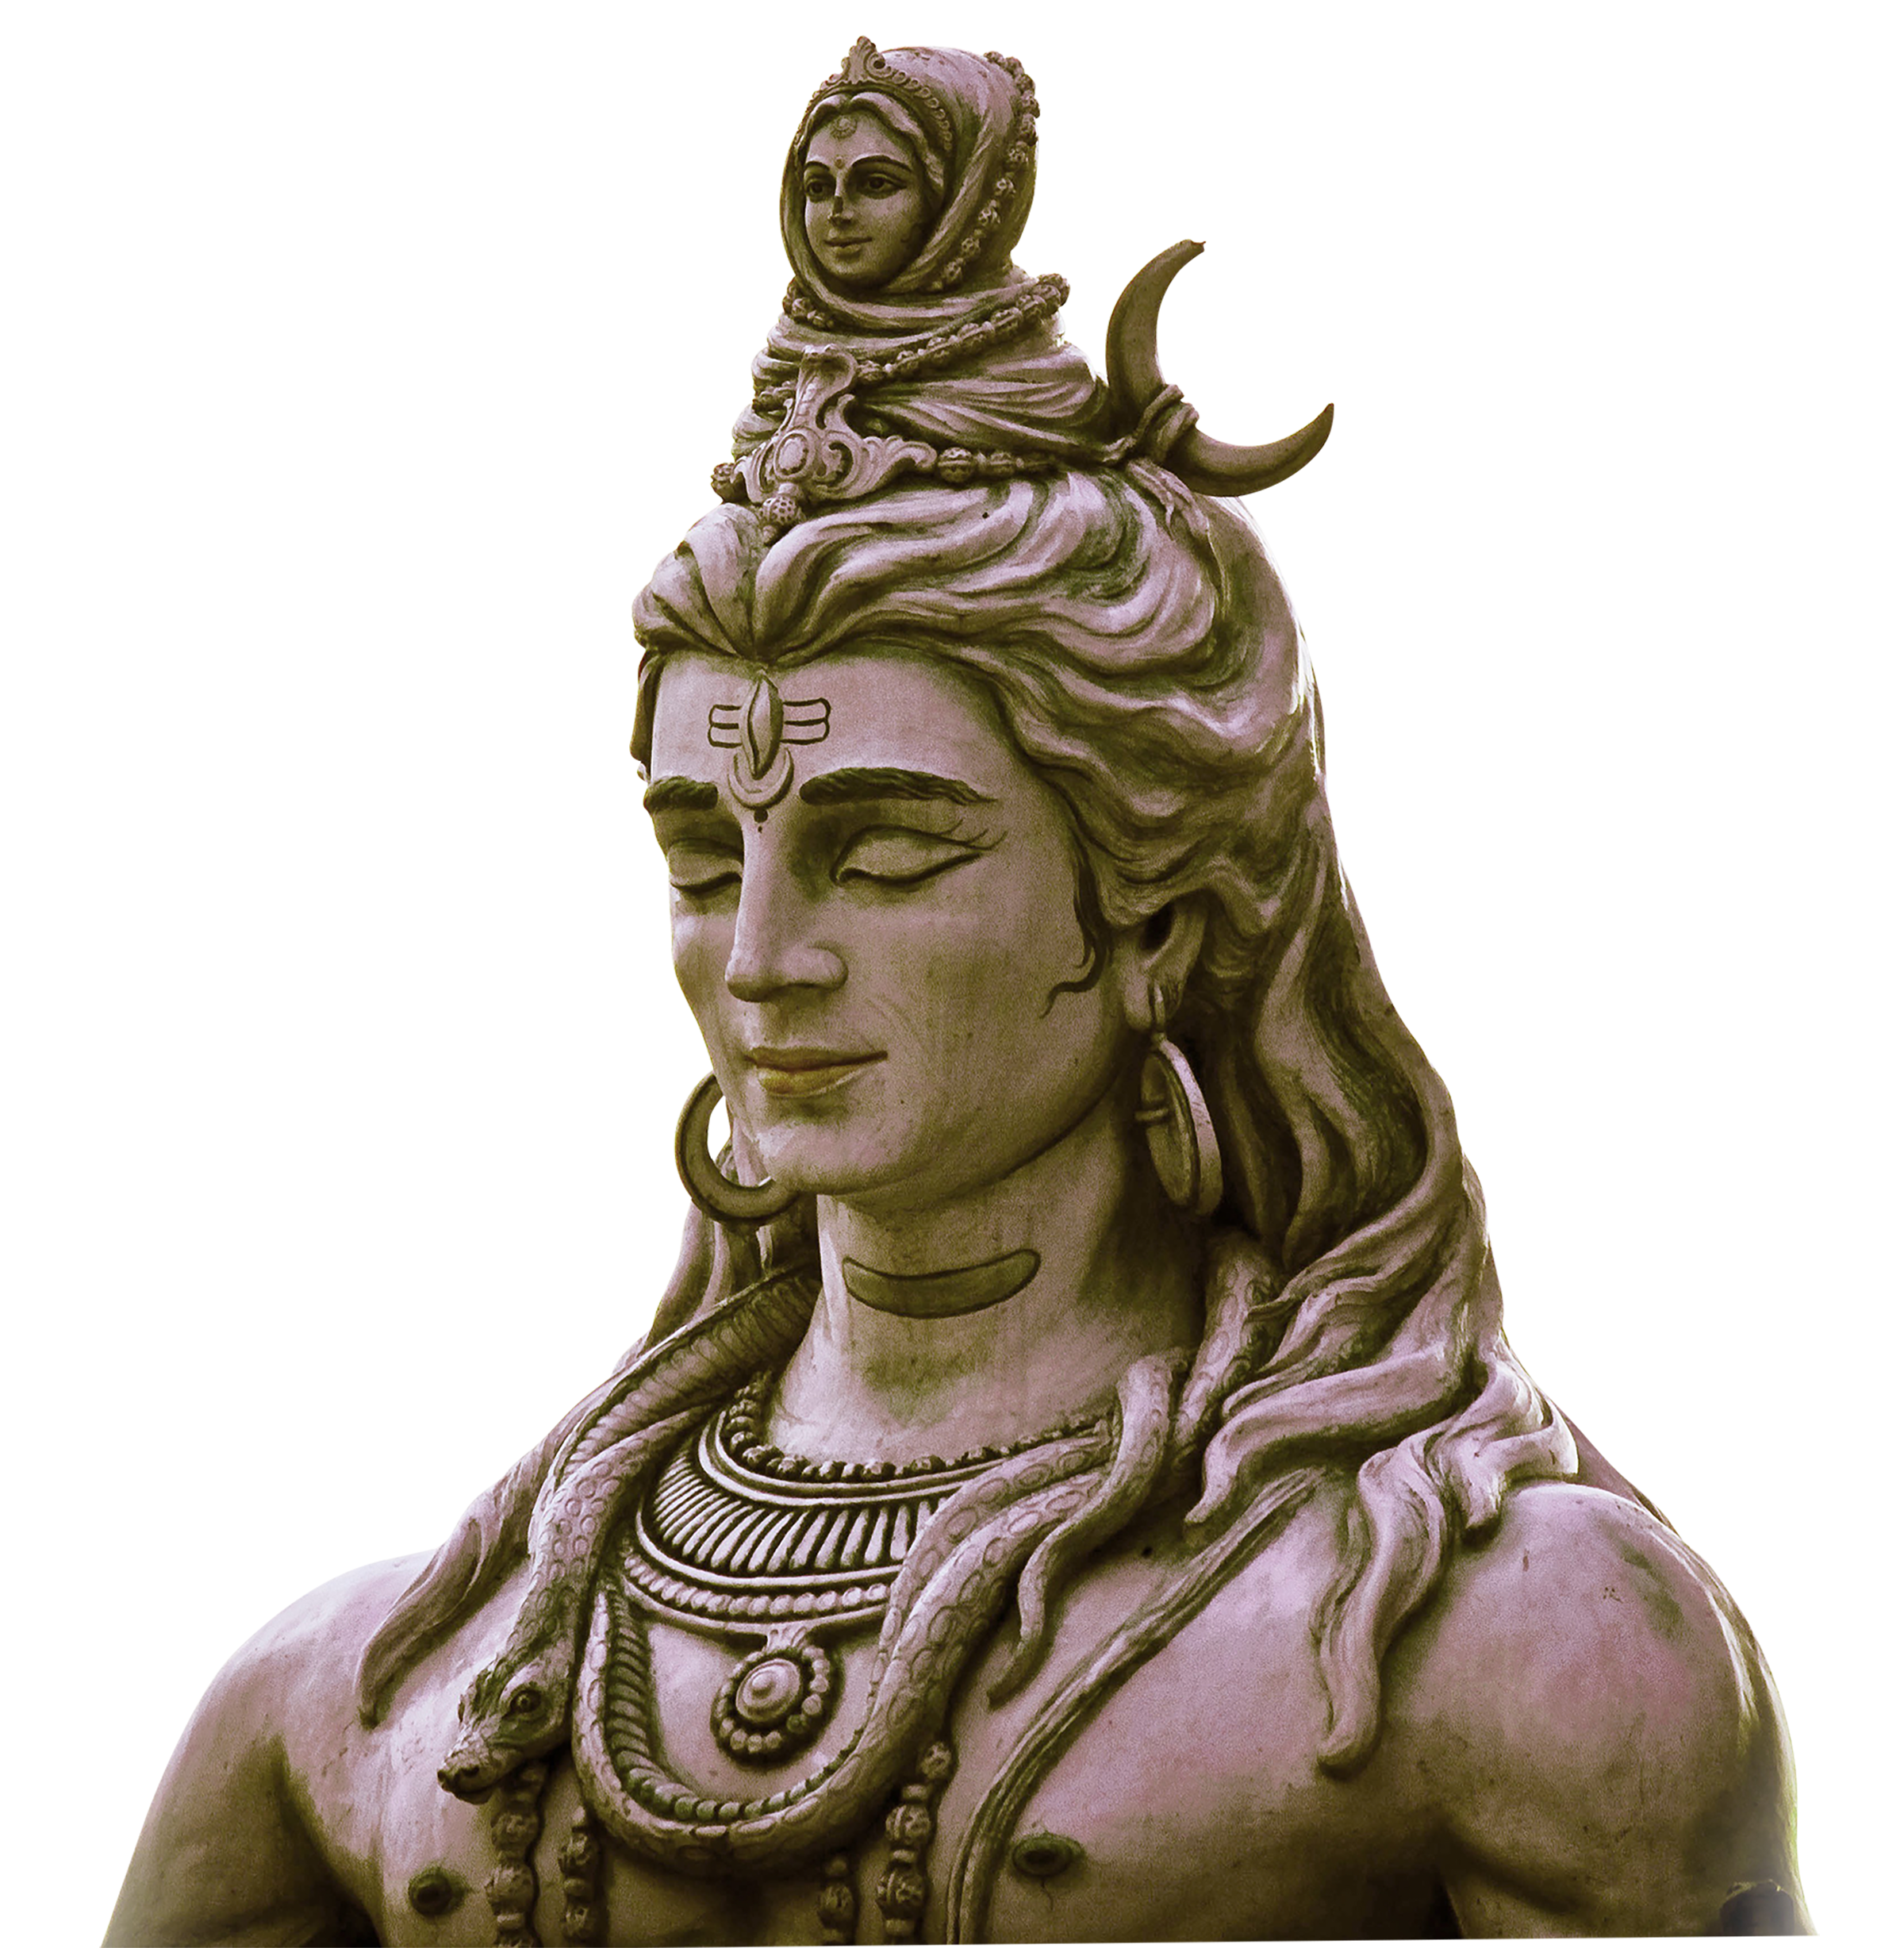 Diety statue png. Shiva images free download